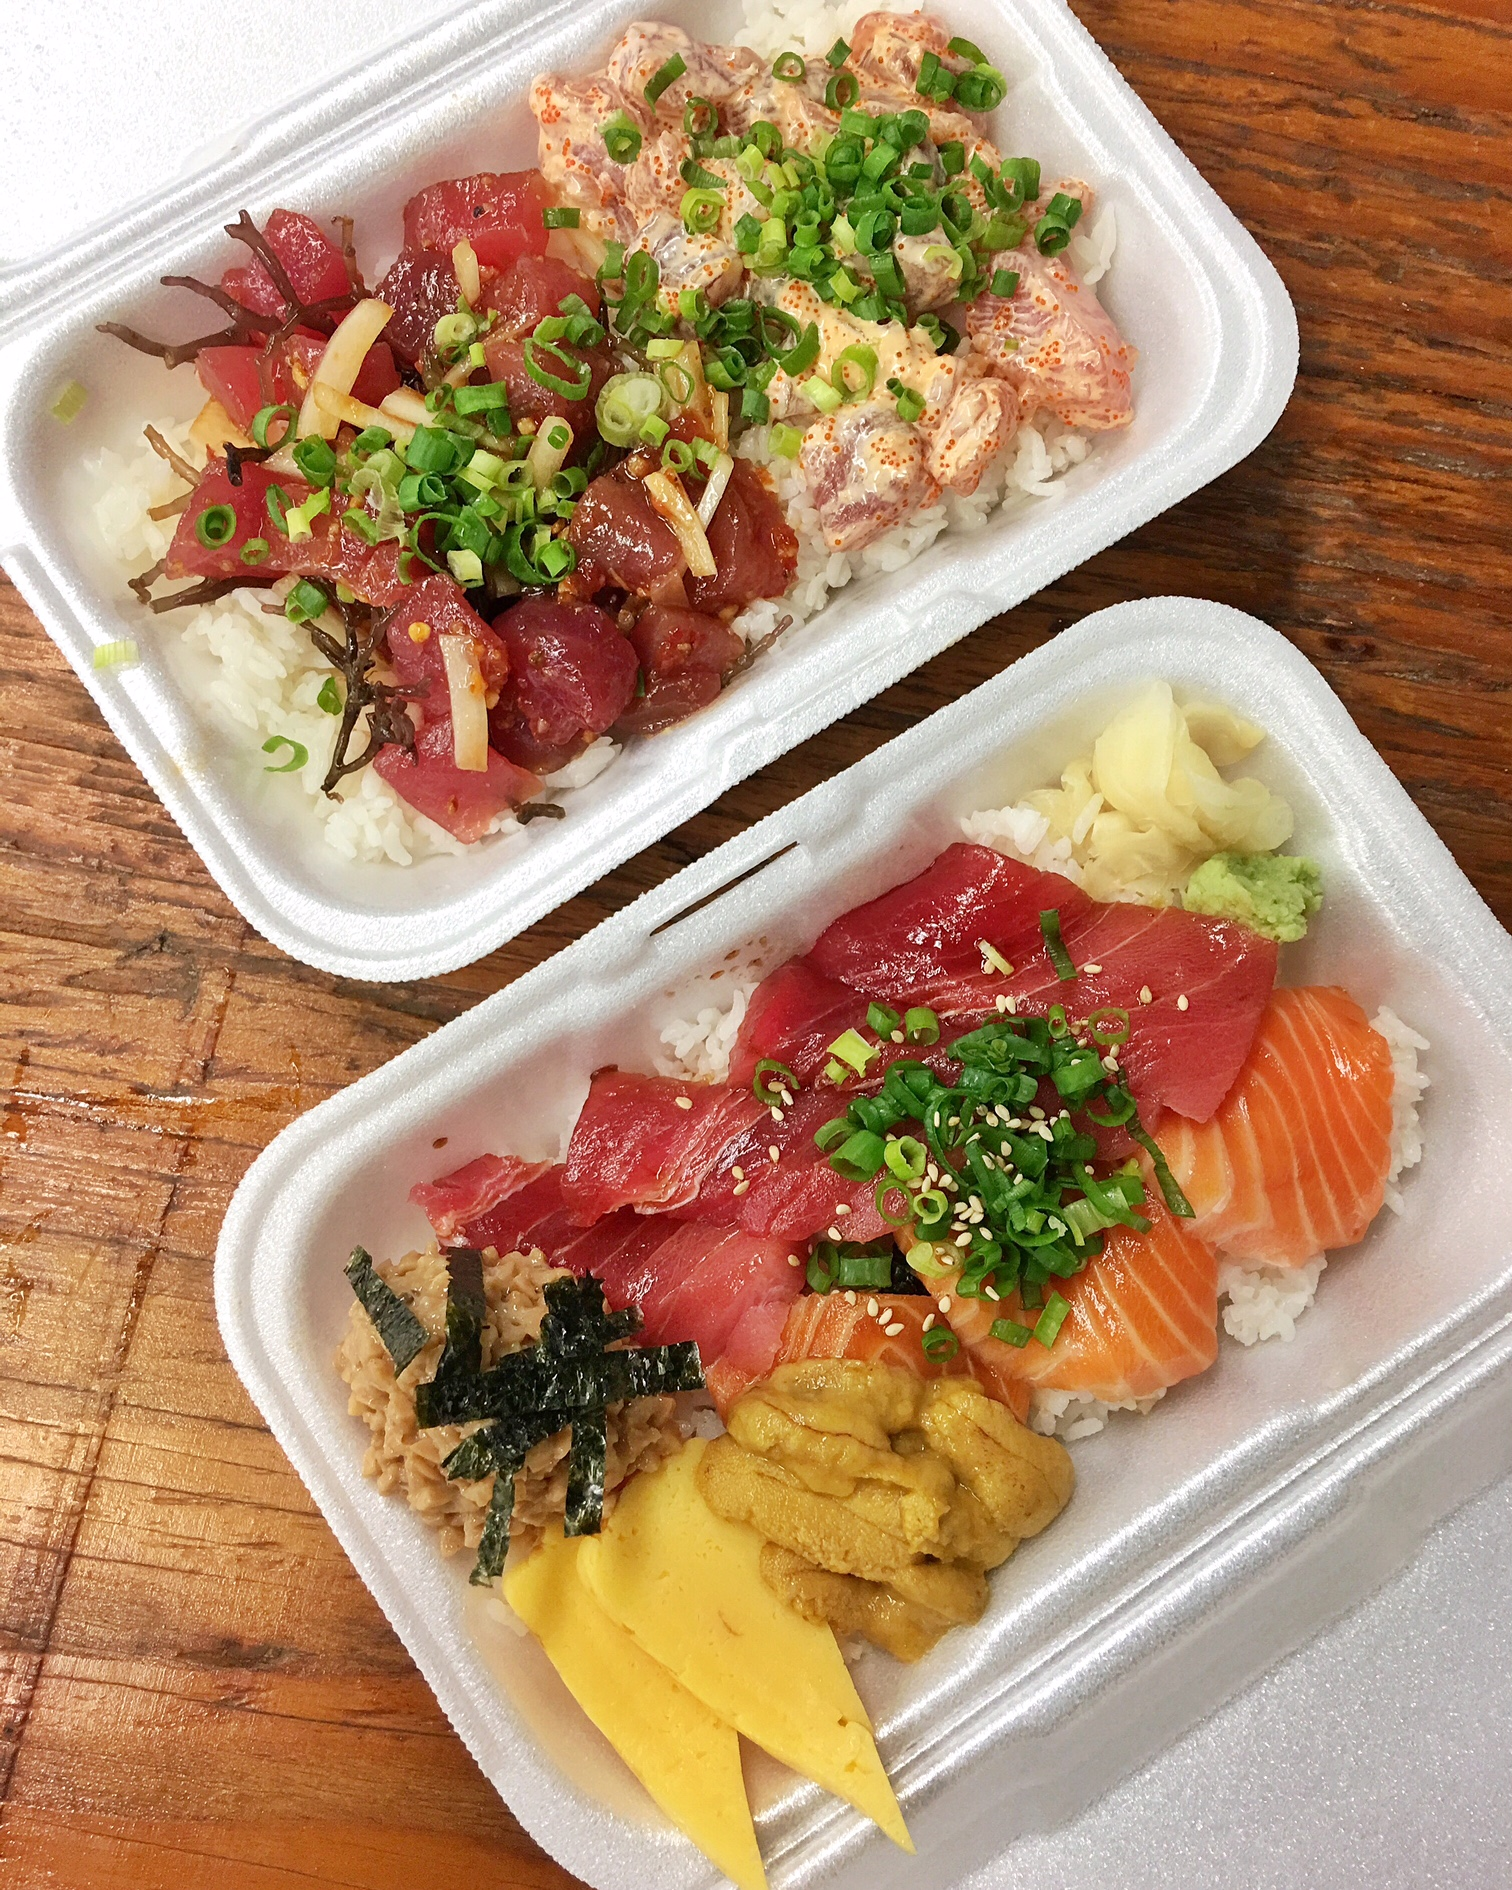 Maguro Brothers Hawaii - Poke and Sashimi in Honolulu's Chinatown